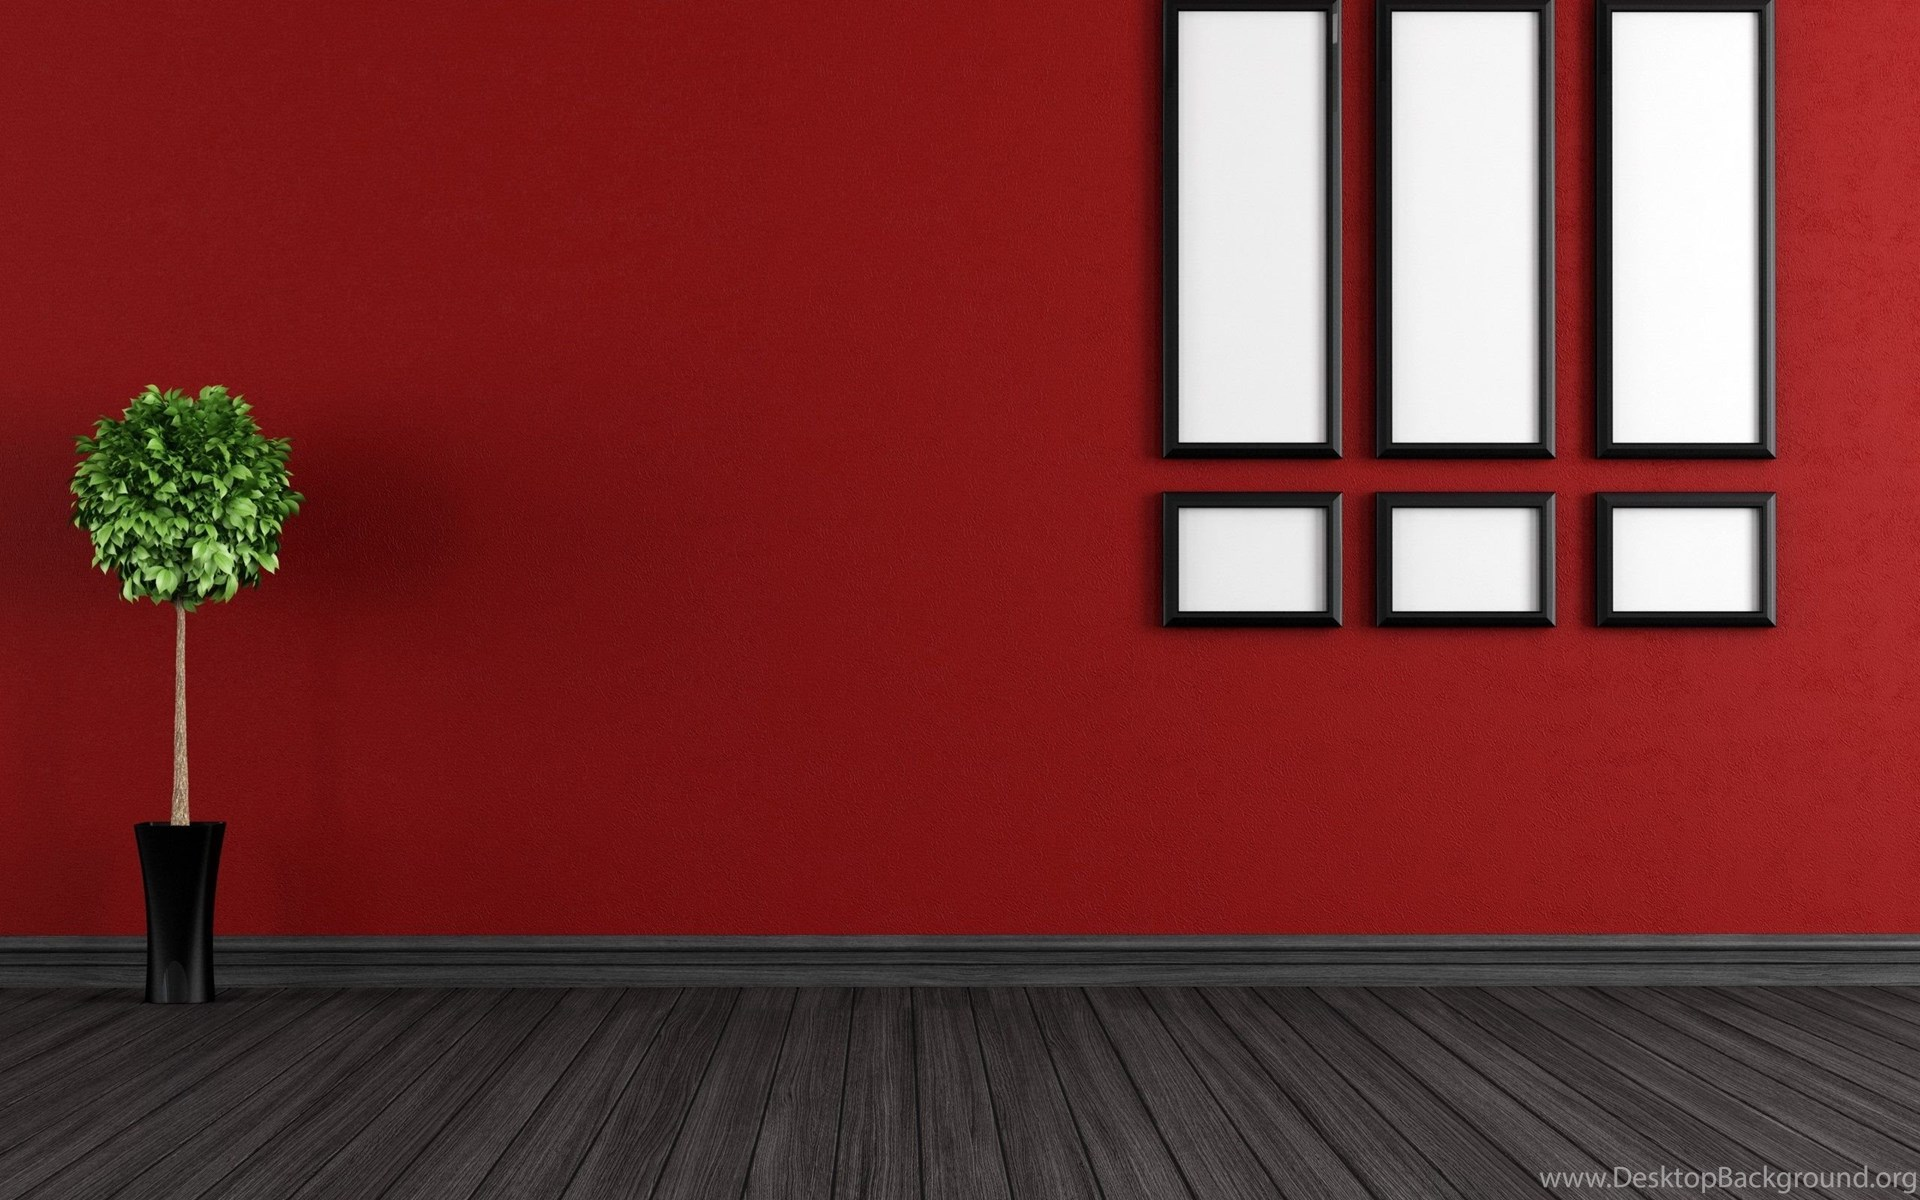 Red Walls Room Interior Wallpapers Hd Of Home Decoration Desktop